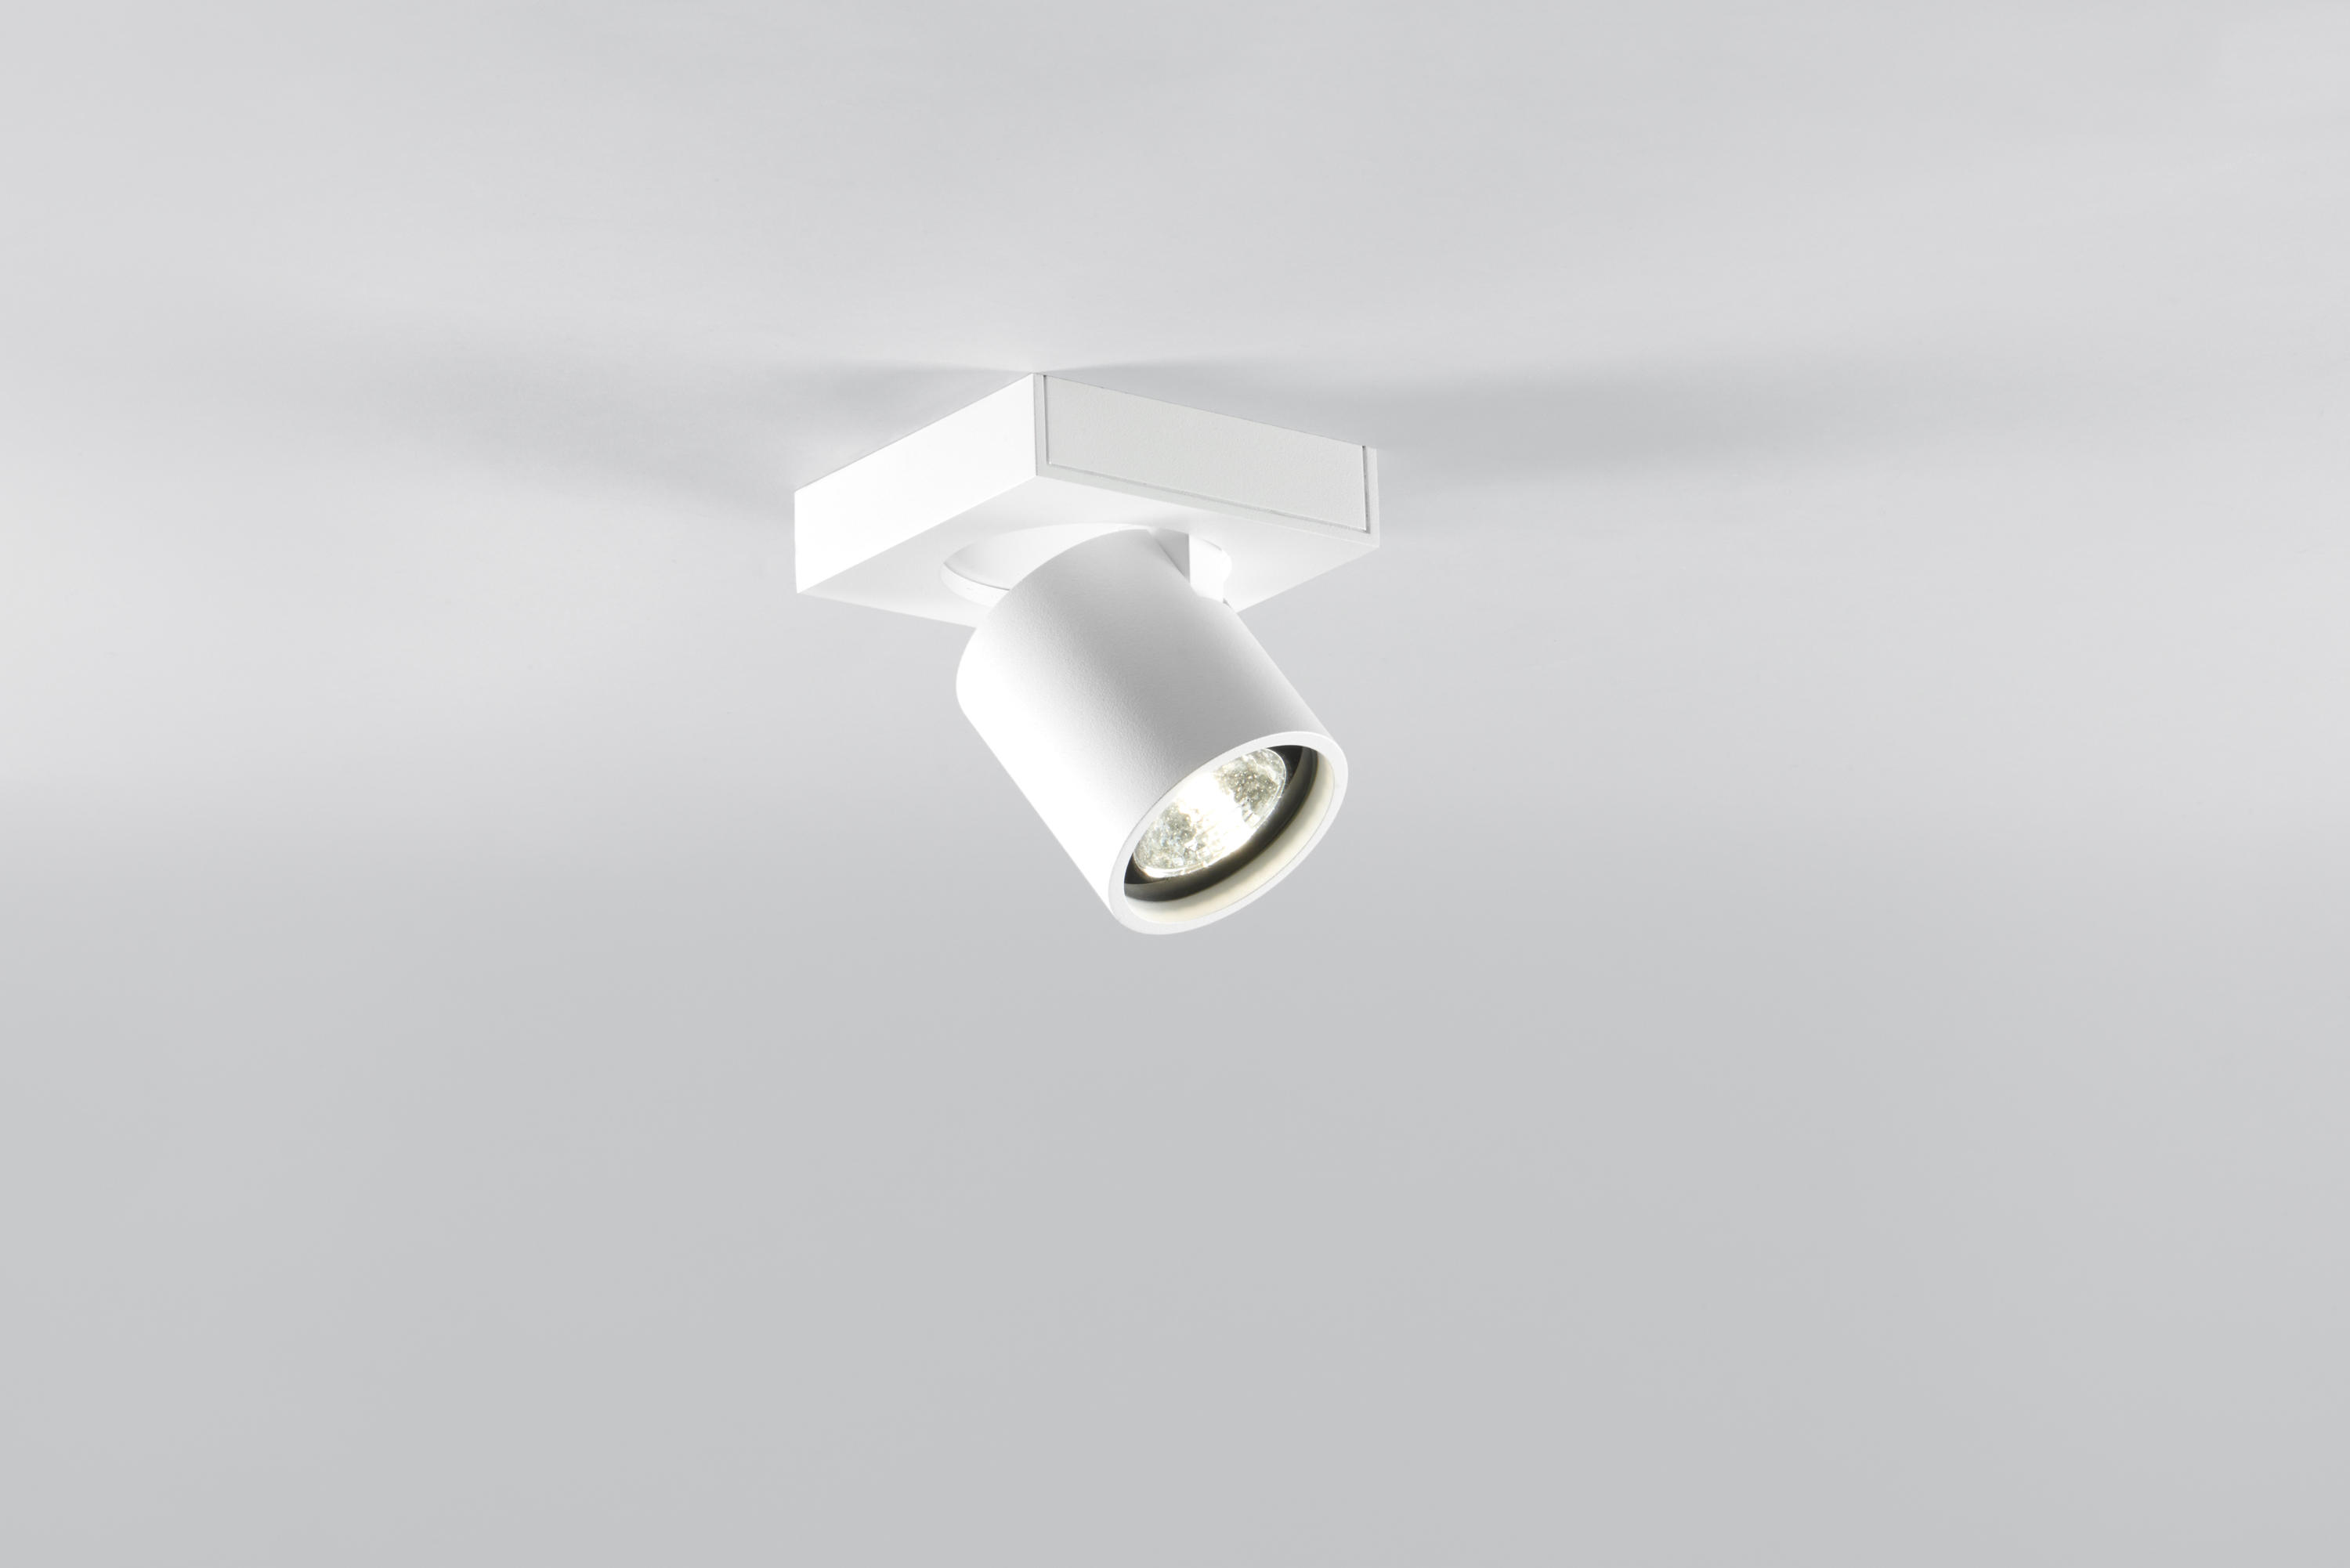 Focus 1 ceiling mounted spotlights from light point architonic focus 1 by light point ceiling mounted spotlights aloadofball Image collections